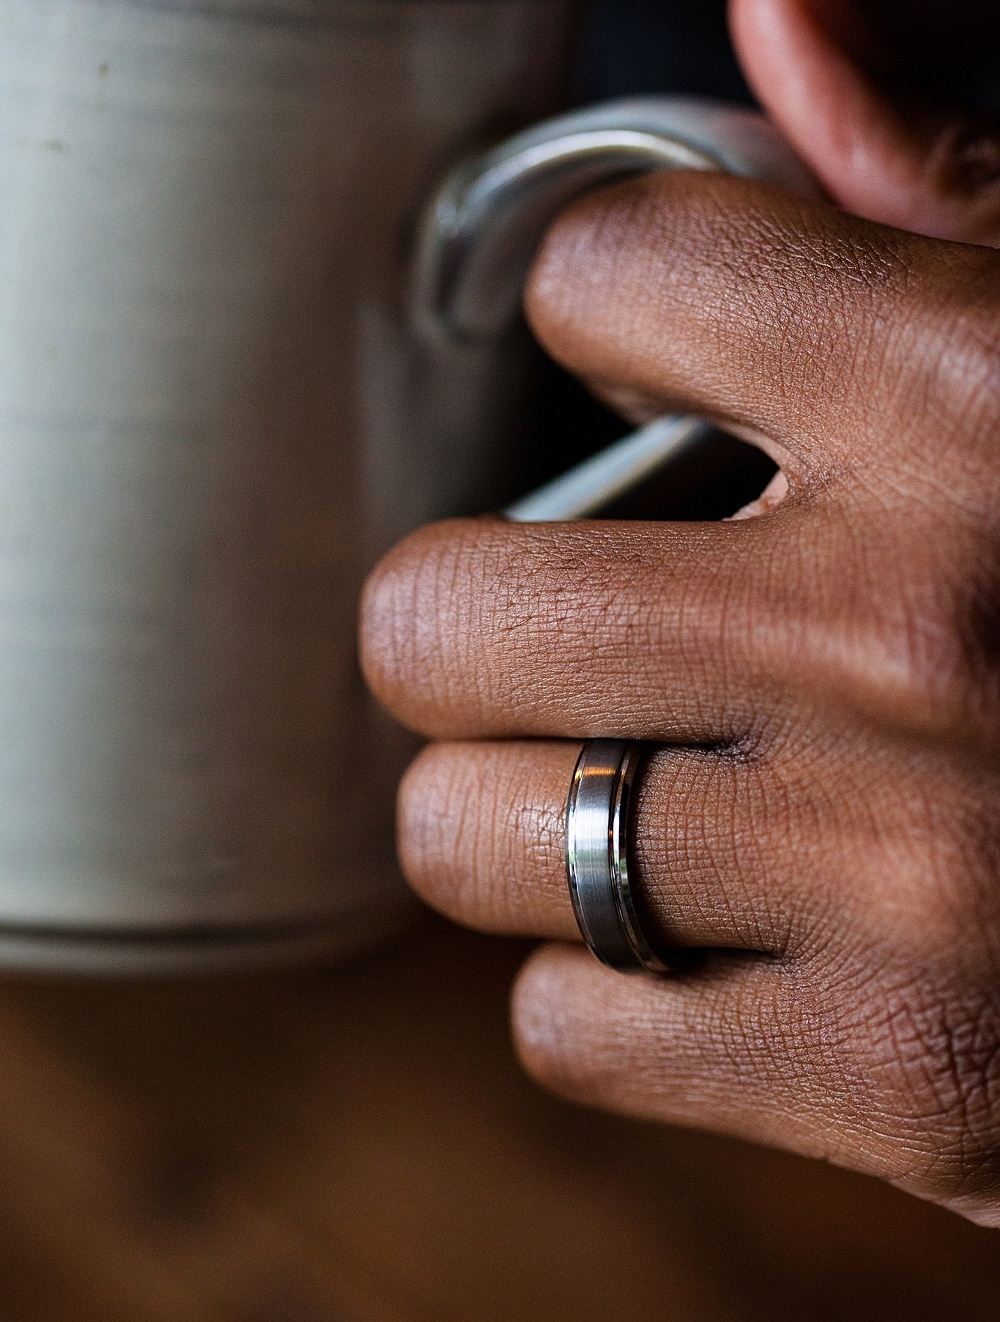 Foxtrot Bands - unique and affordable tungsten wedding bands for men